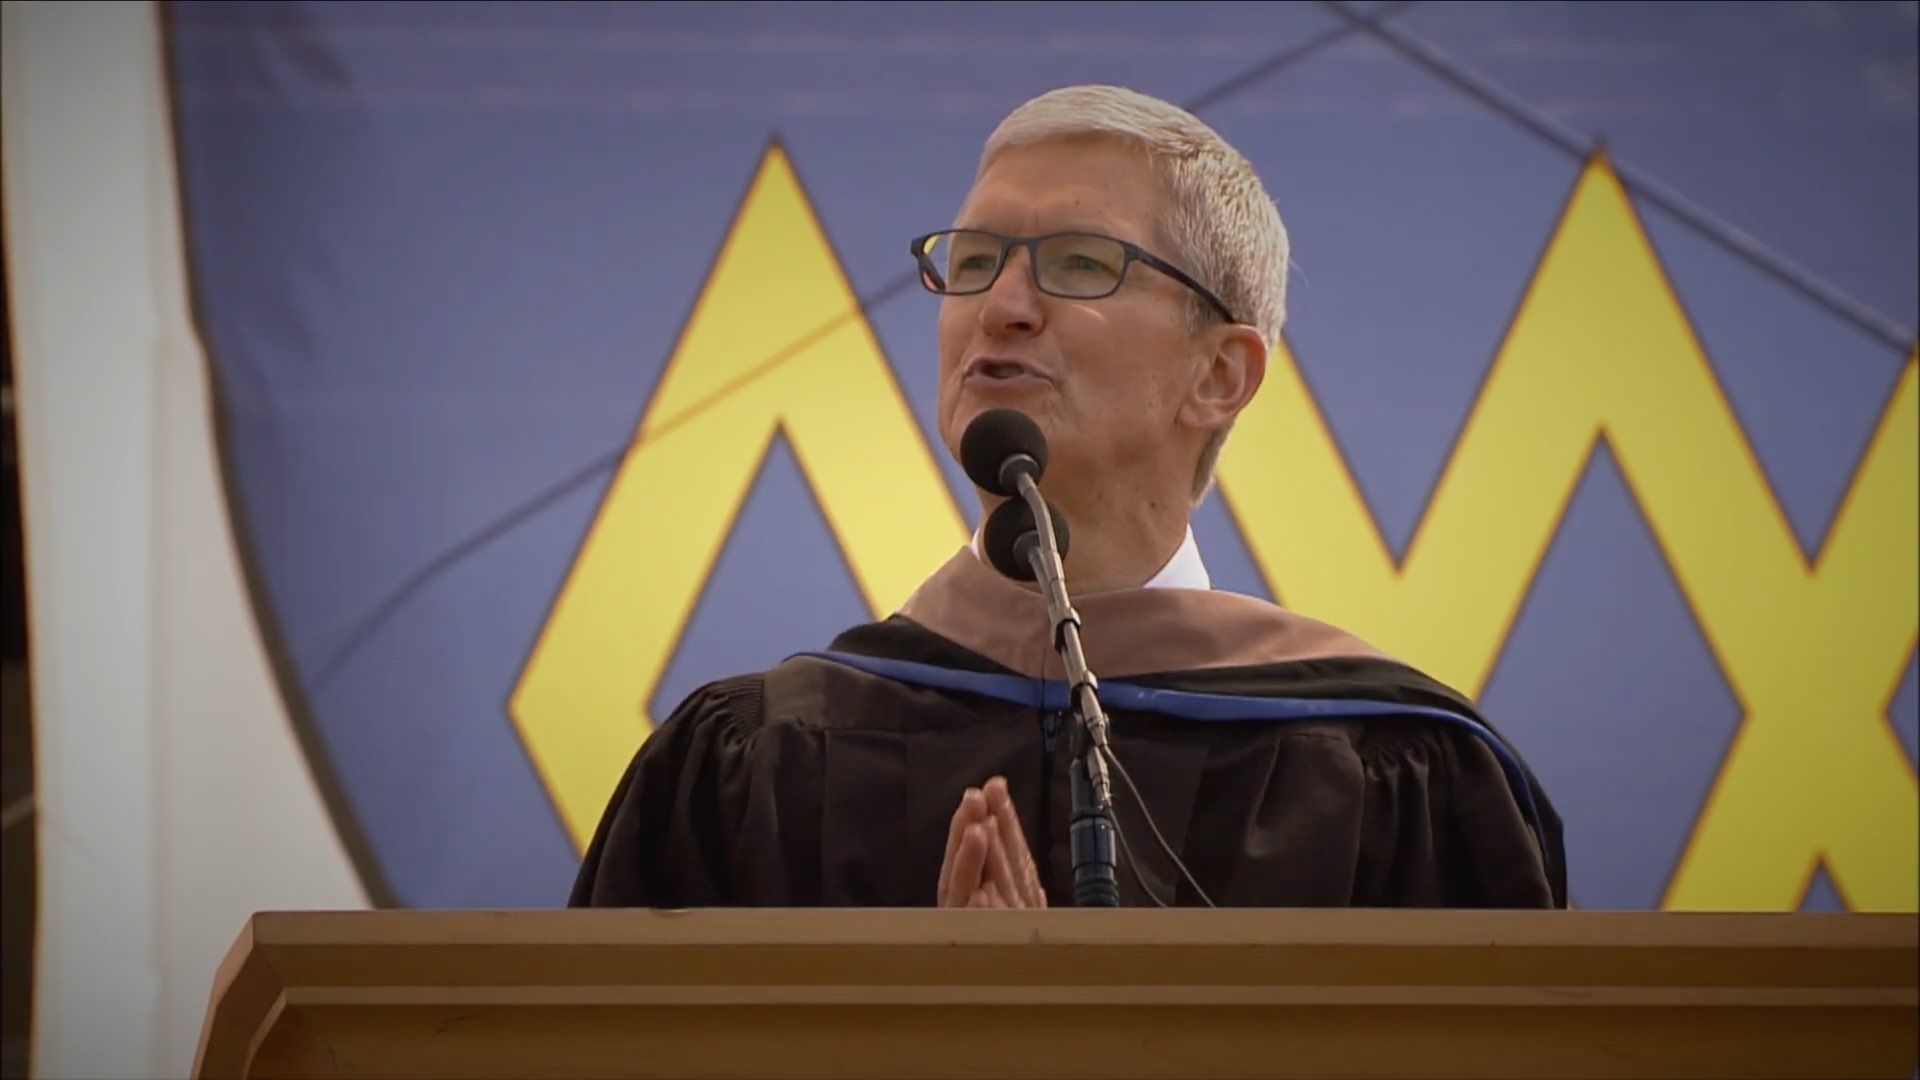 VIDEO: Tim Cook talks privacy, Steve Jobs and more in Stanford 2019